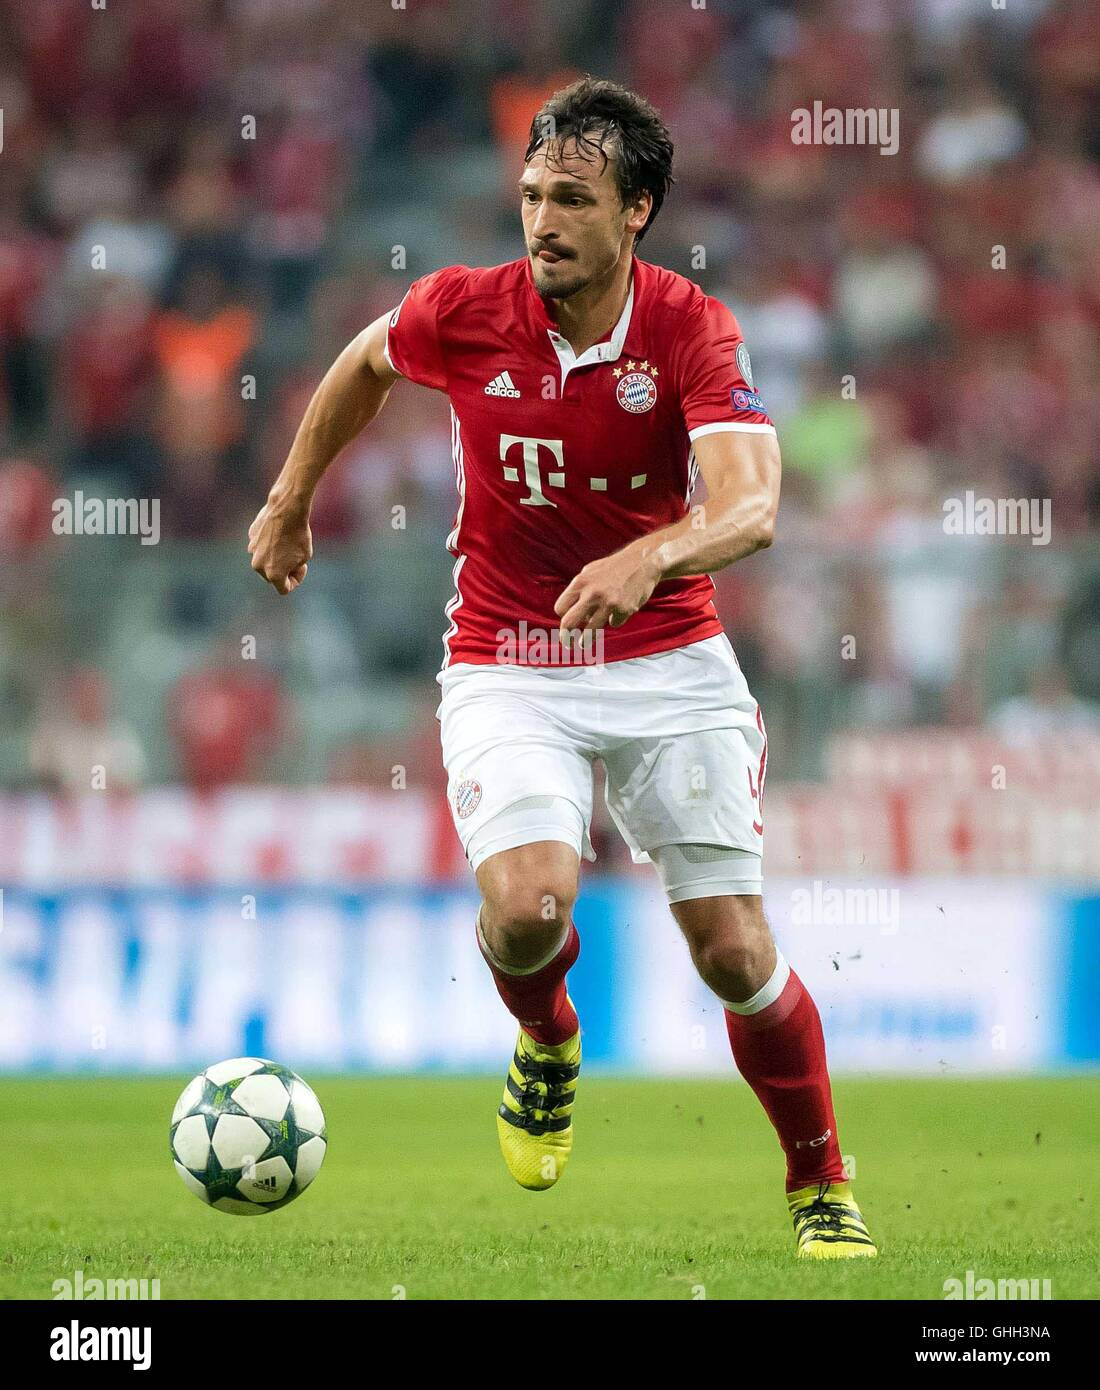 Munich Germany 13th Sep 2016 Bayern s Mats Hummels in action